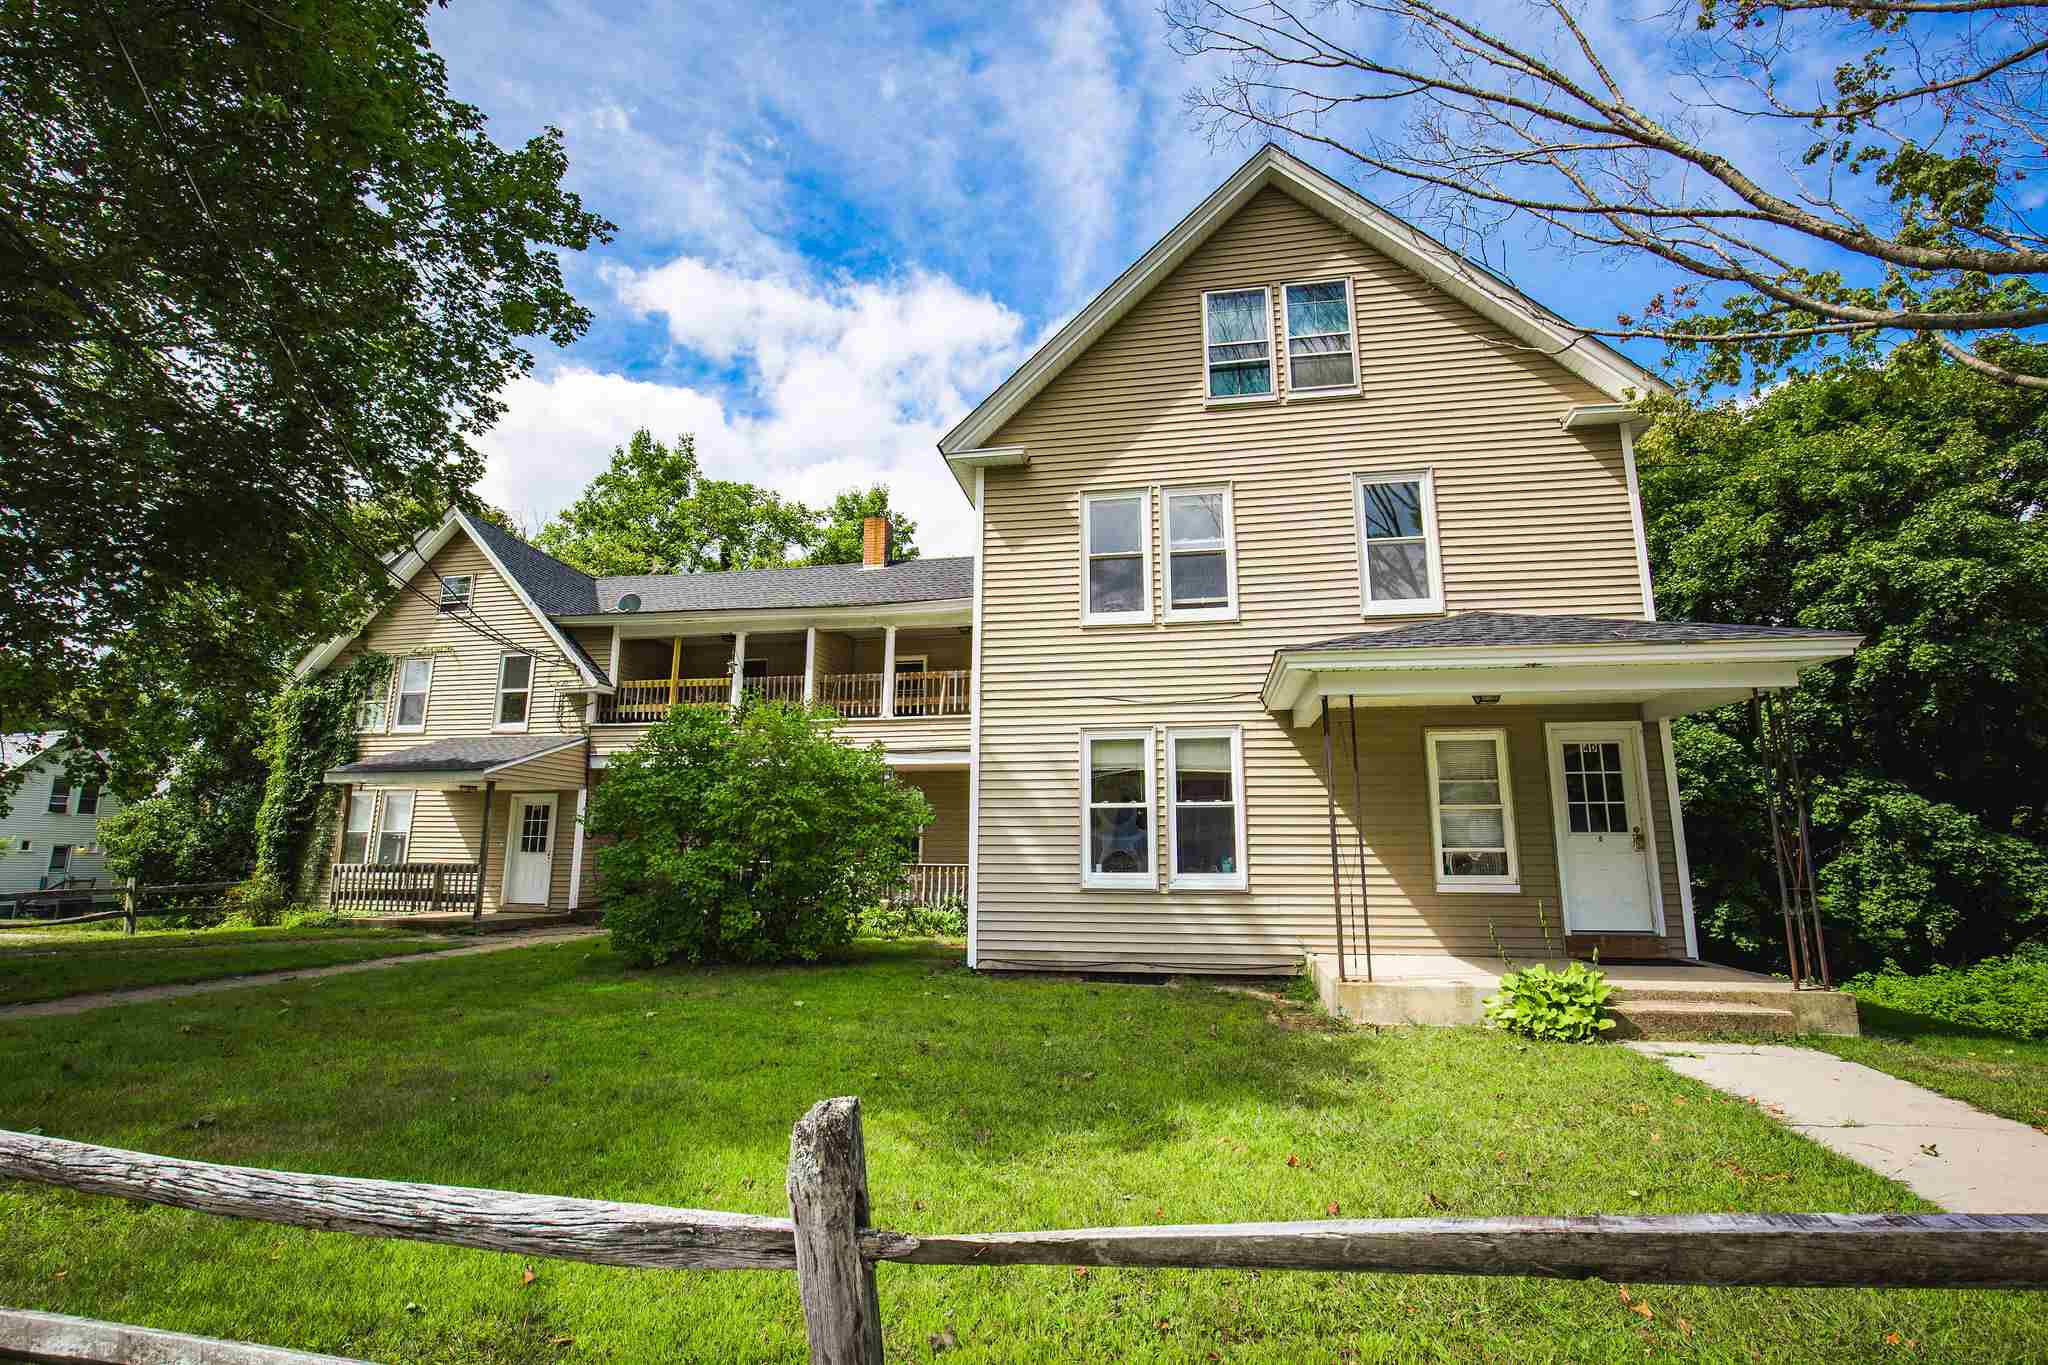 MLS 4784209: 4C Bayley Avenue, Plymouth NH